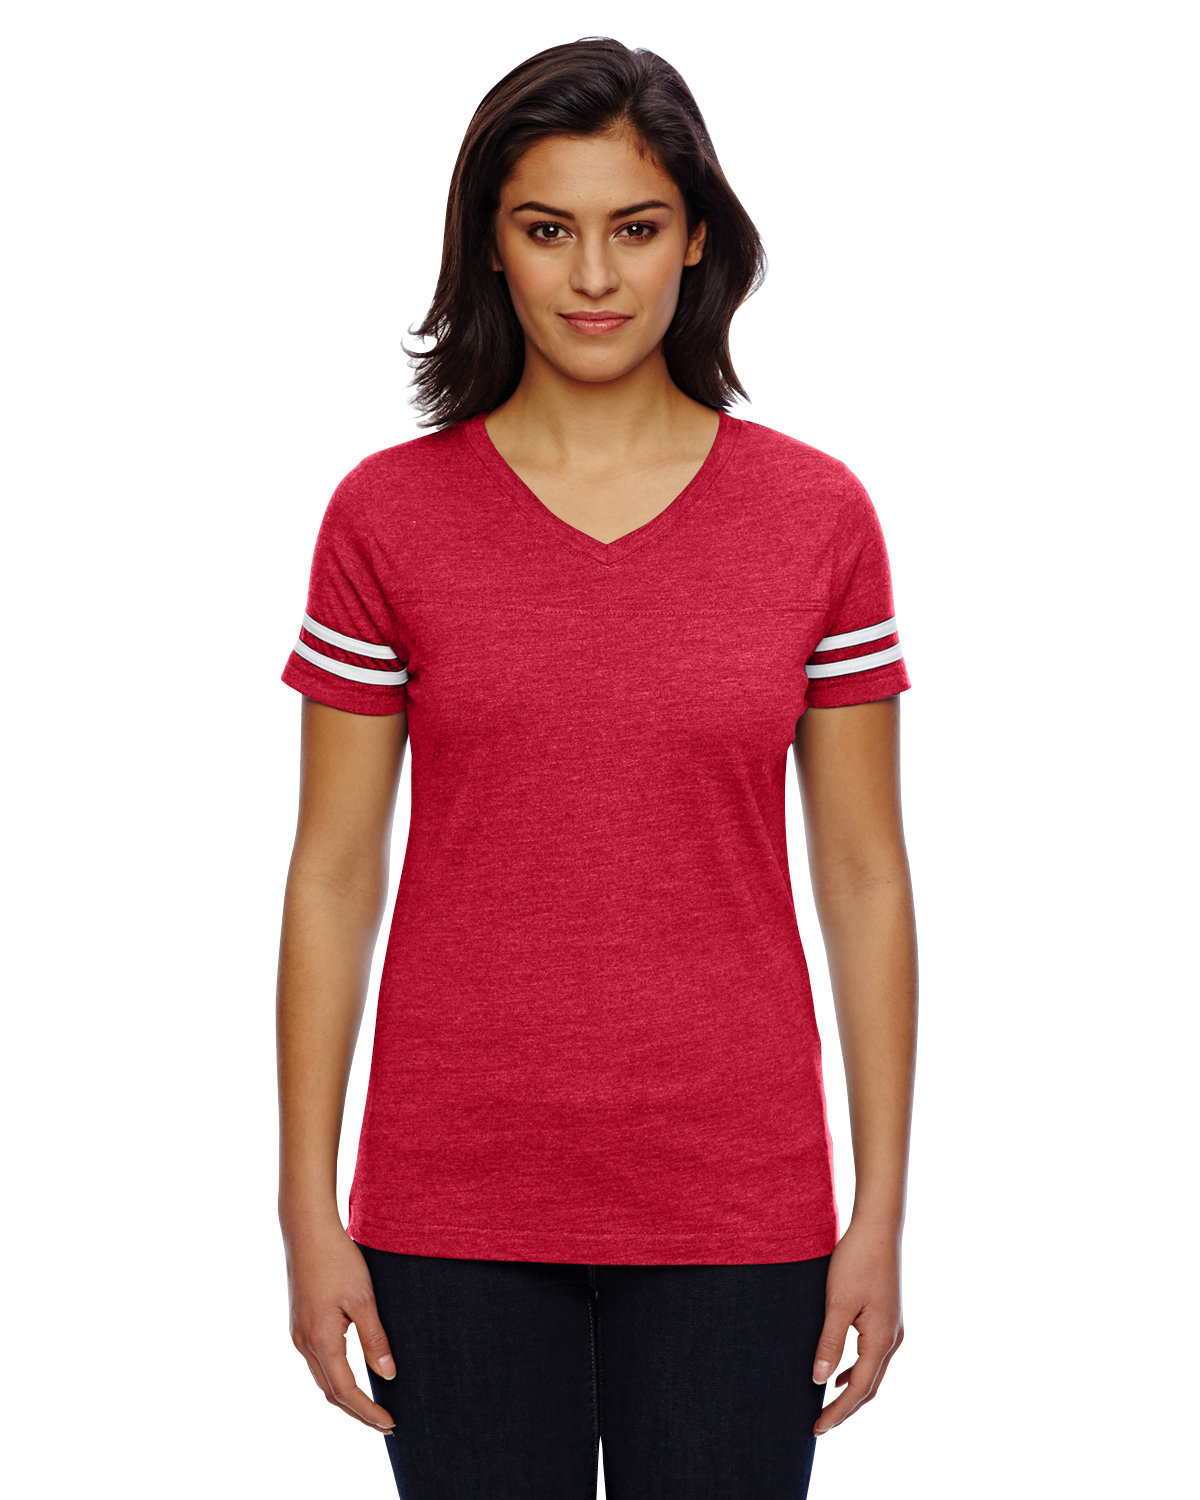 LAT Ladies' Football T-Shirt VN RED/ BLD WHT